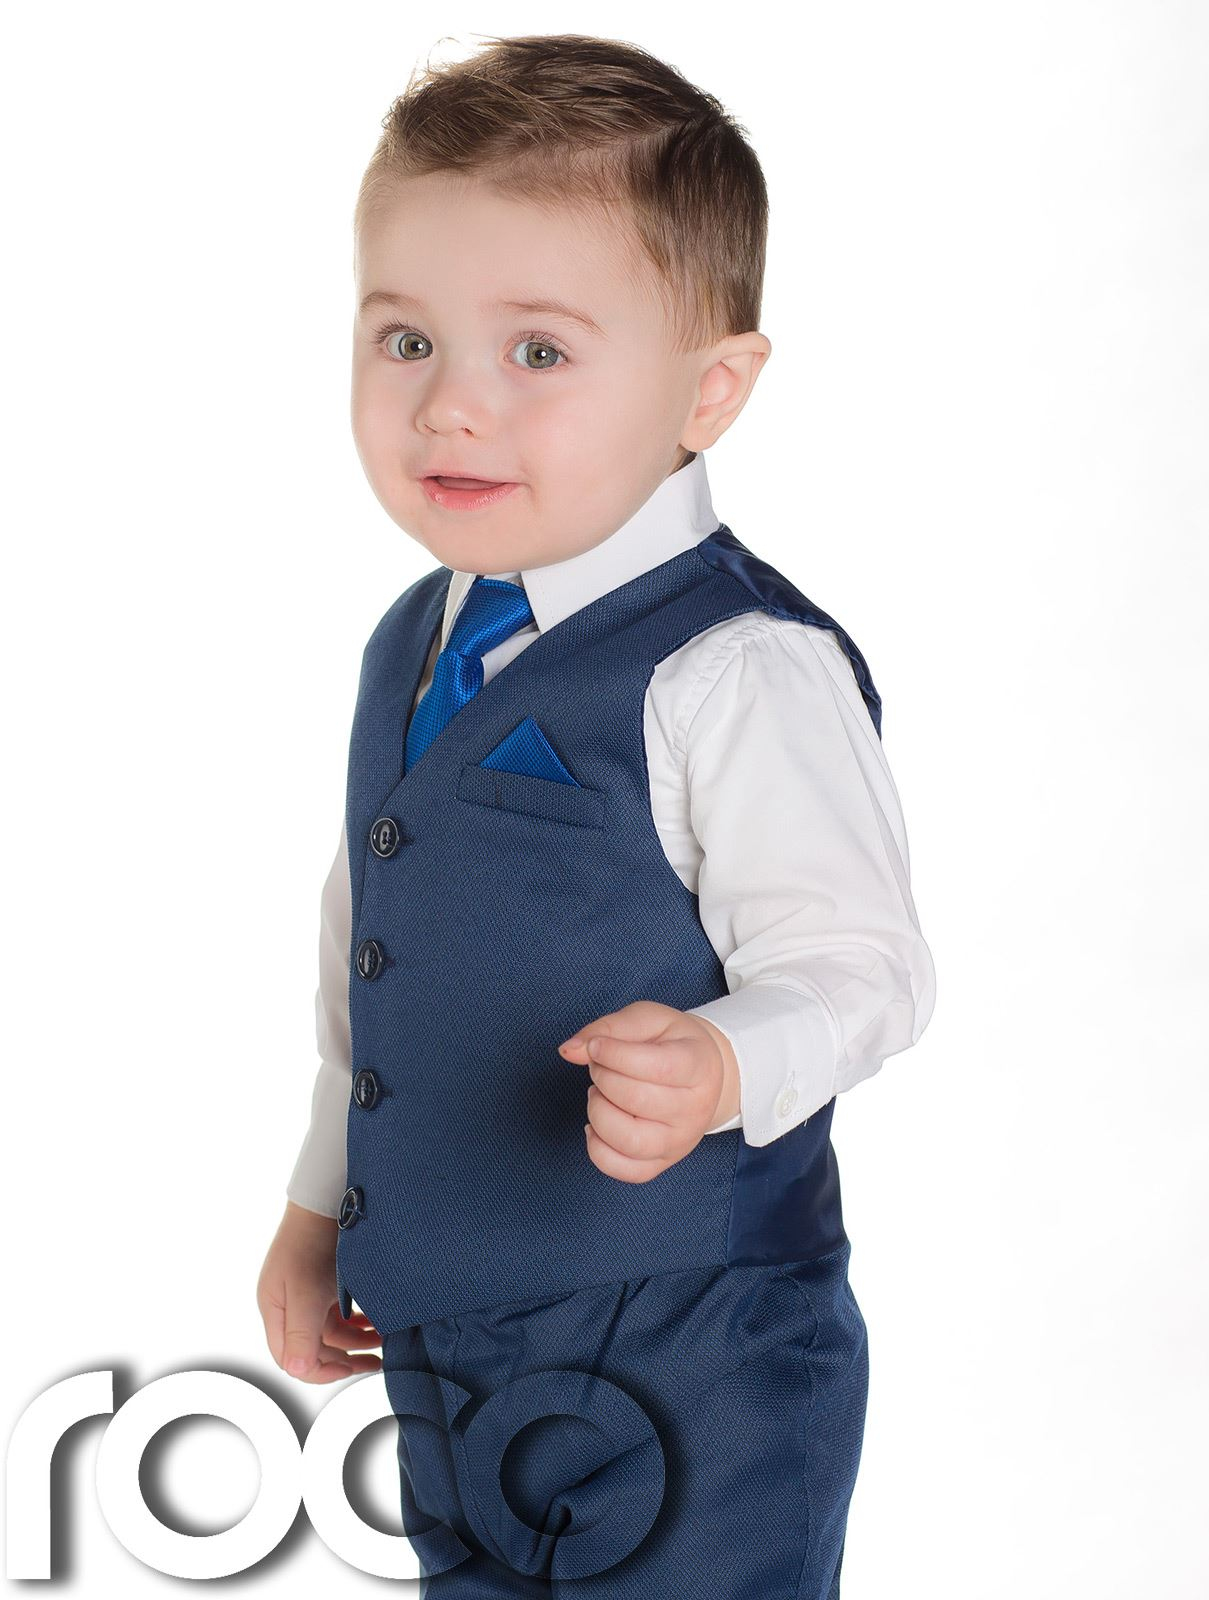 He'll look dapper in baby boy suits, complete with jacket and tie. Baby Depot has stylish dresswear for baby boys at great prices. Free Shipping available.